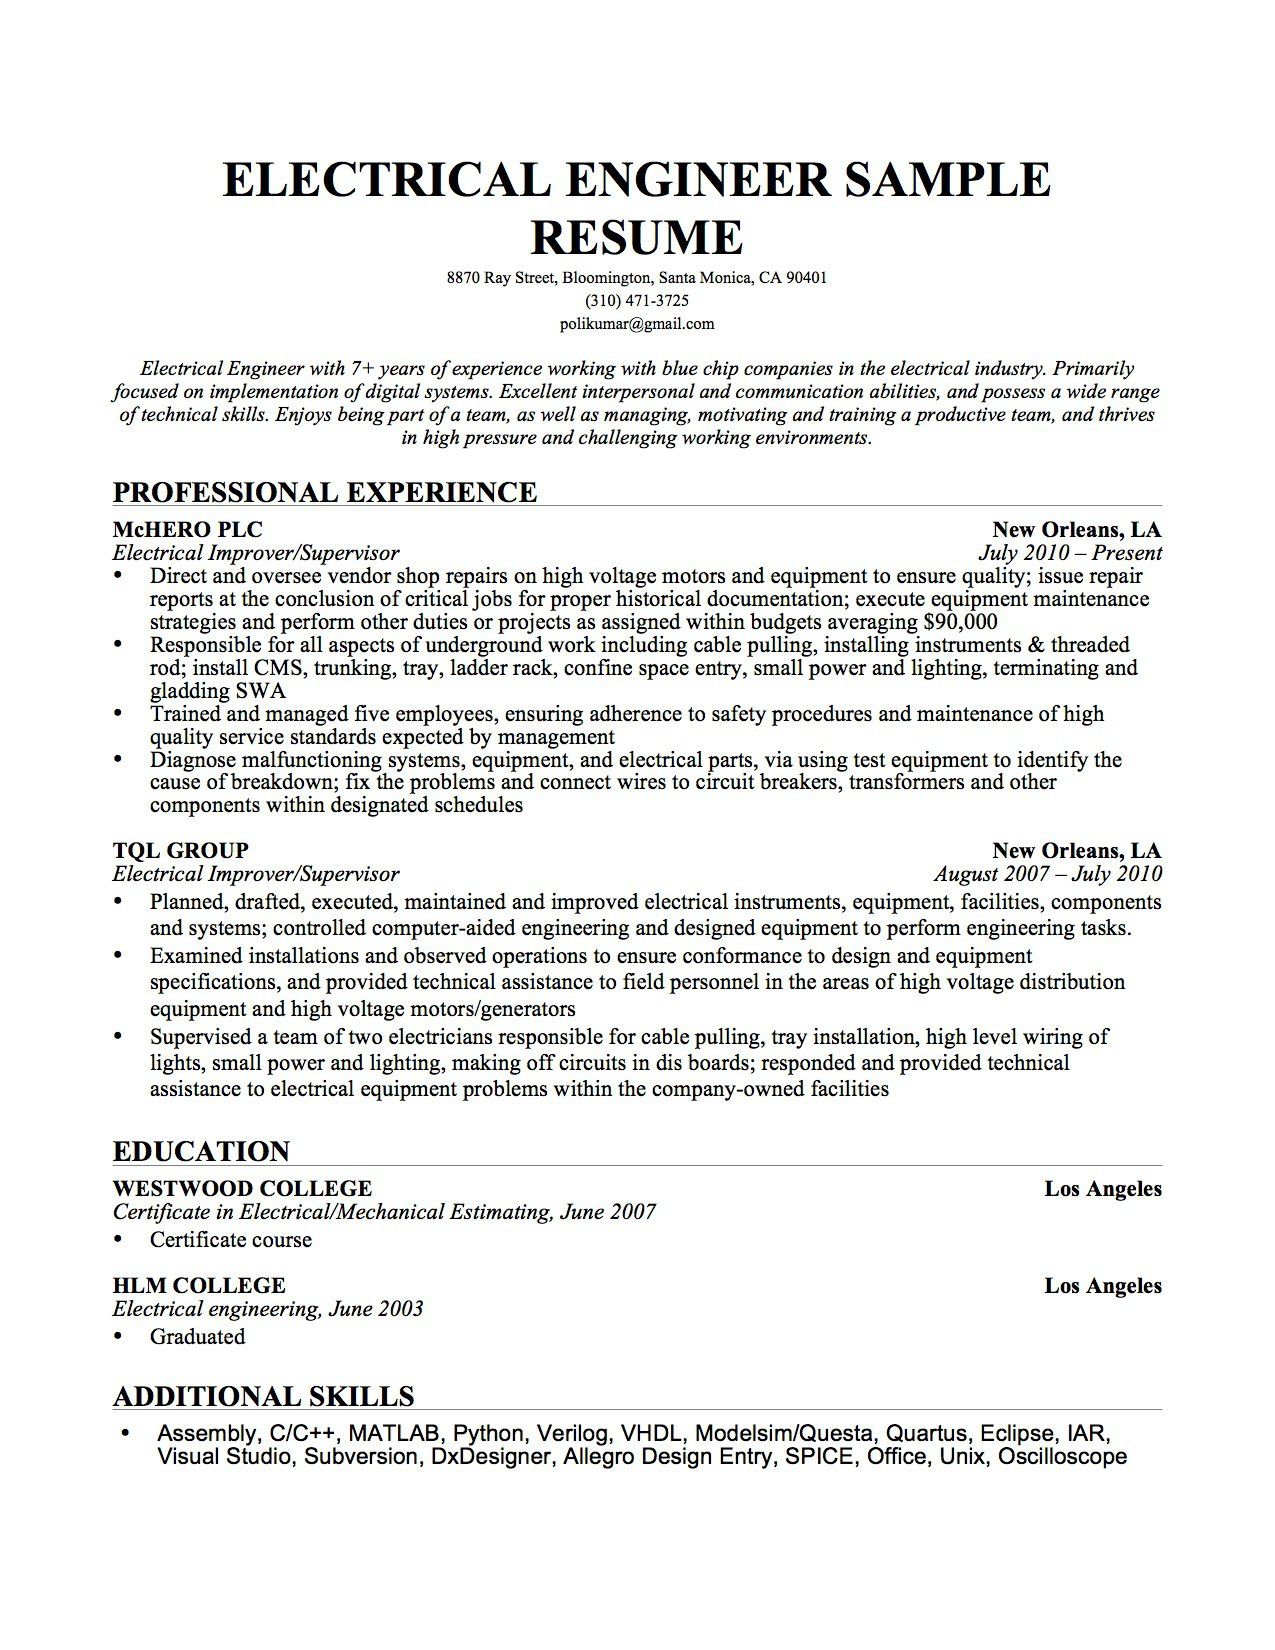 Electrician Resume Engineer Sample Resume Equipment Fixed Biomedical Technician Cover